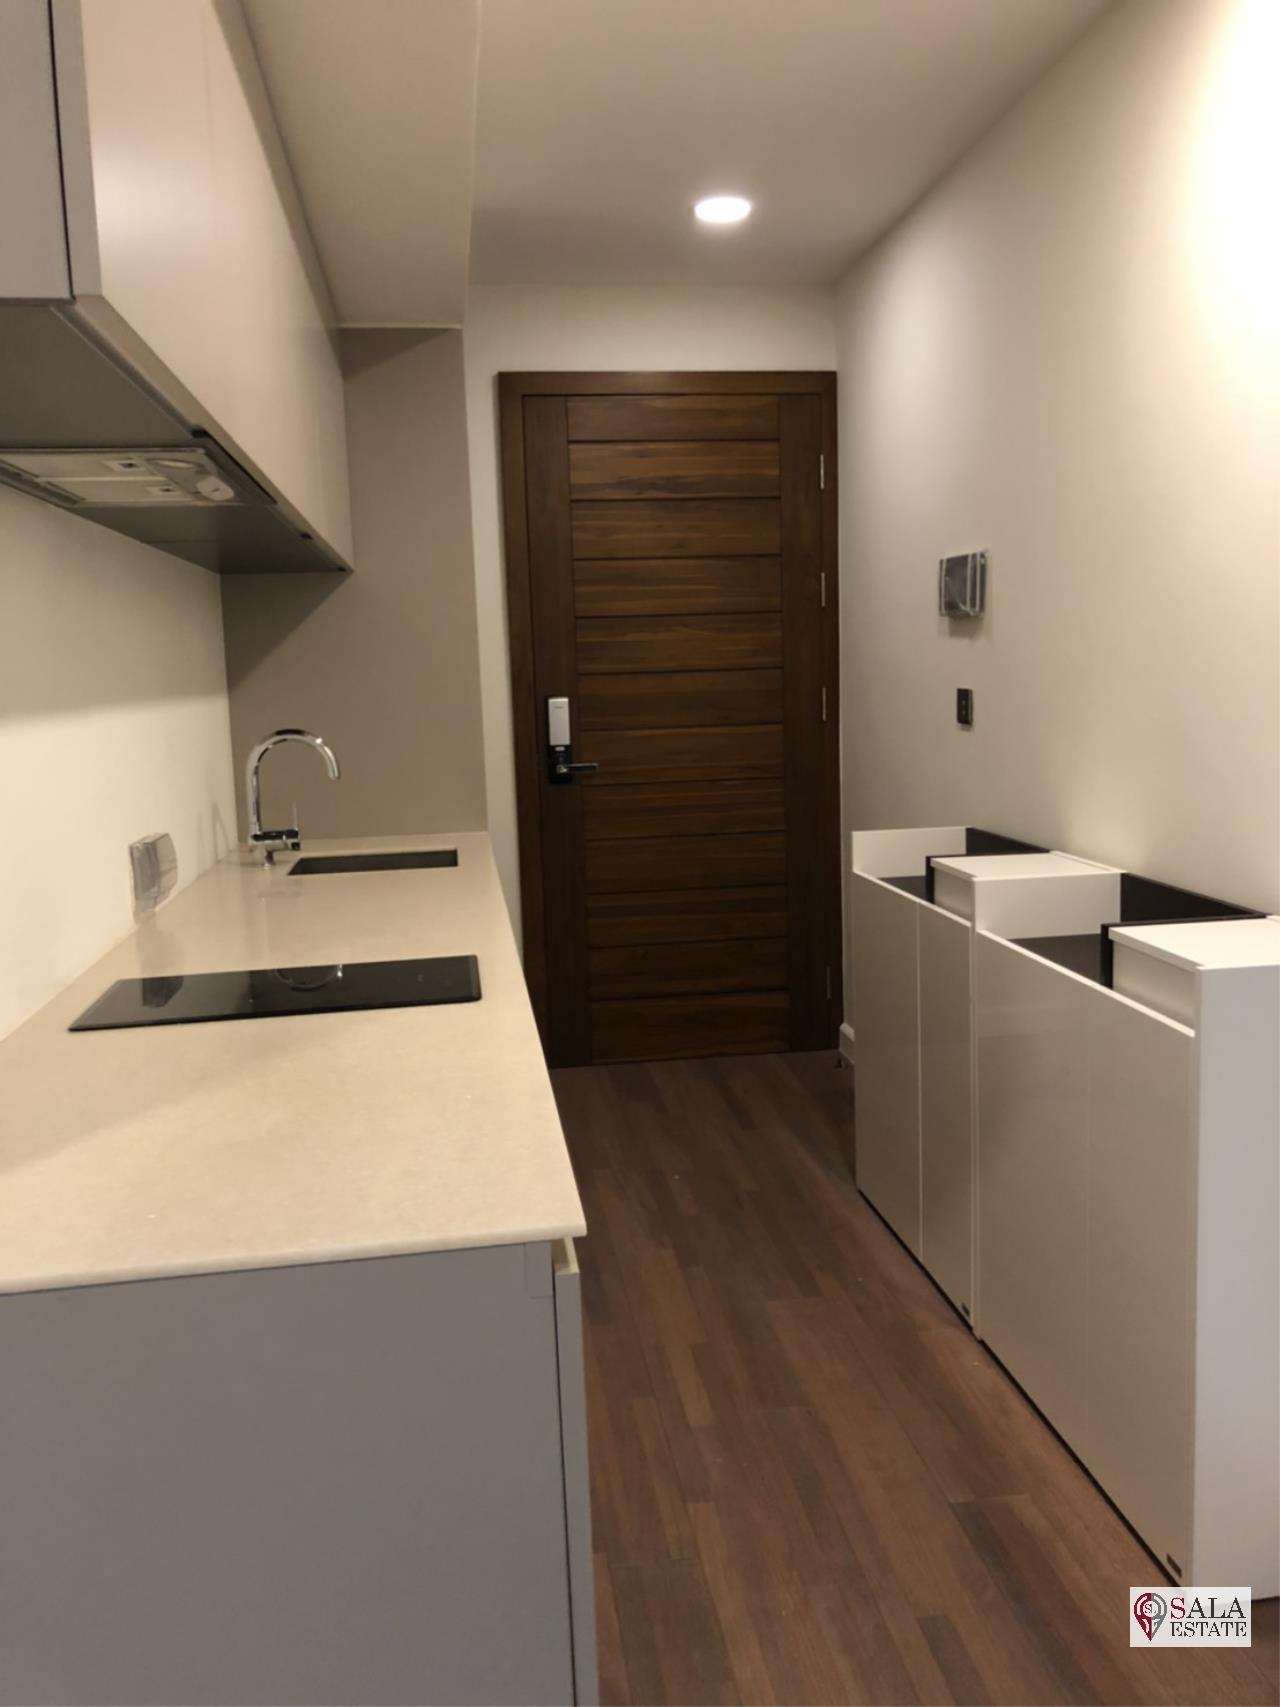 SALA ESTATE Agency's SYNC NATURE SIAM – BTS NATIONAL STADIUM, 0 Bedroom 0 Bathroom, Fully furnished, City View 6